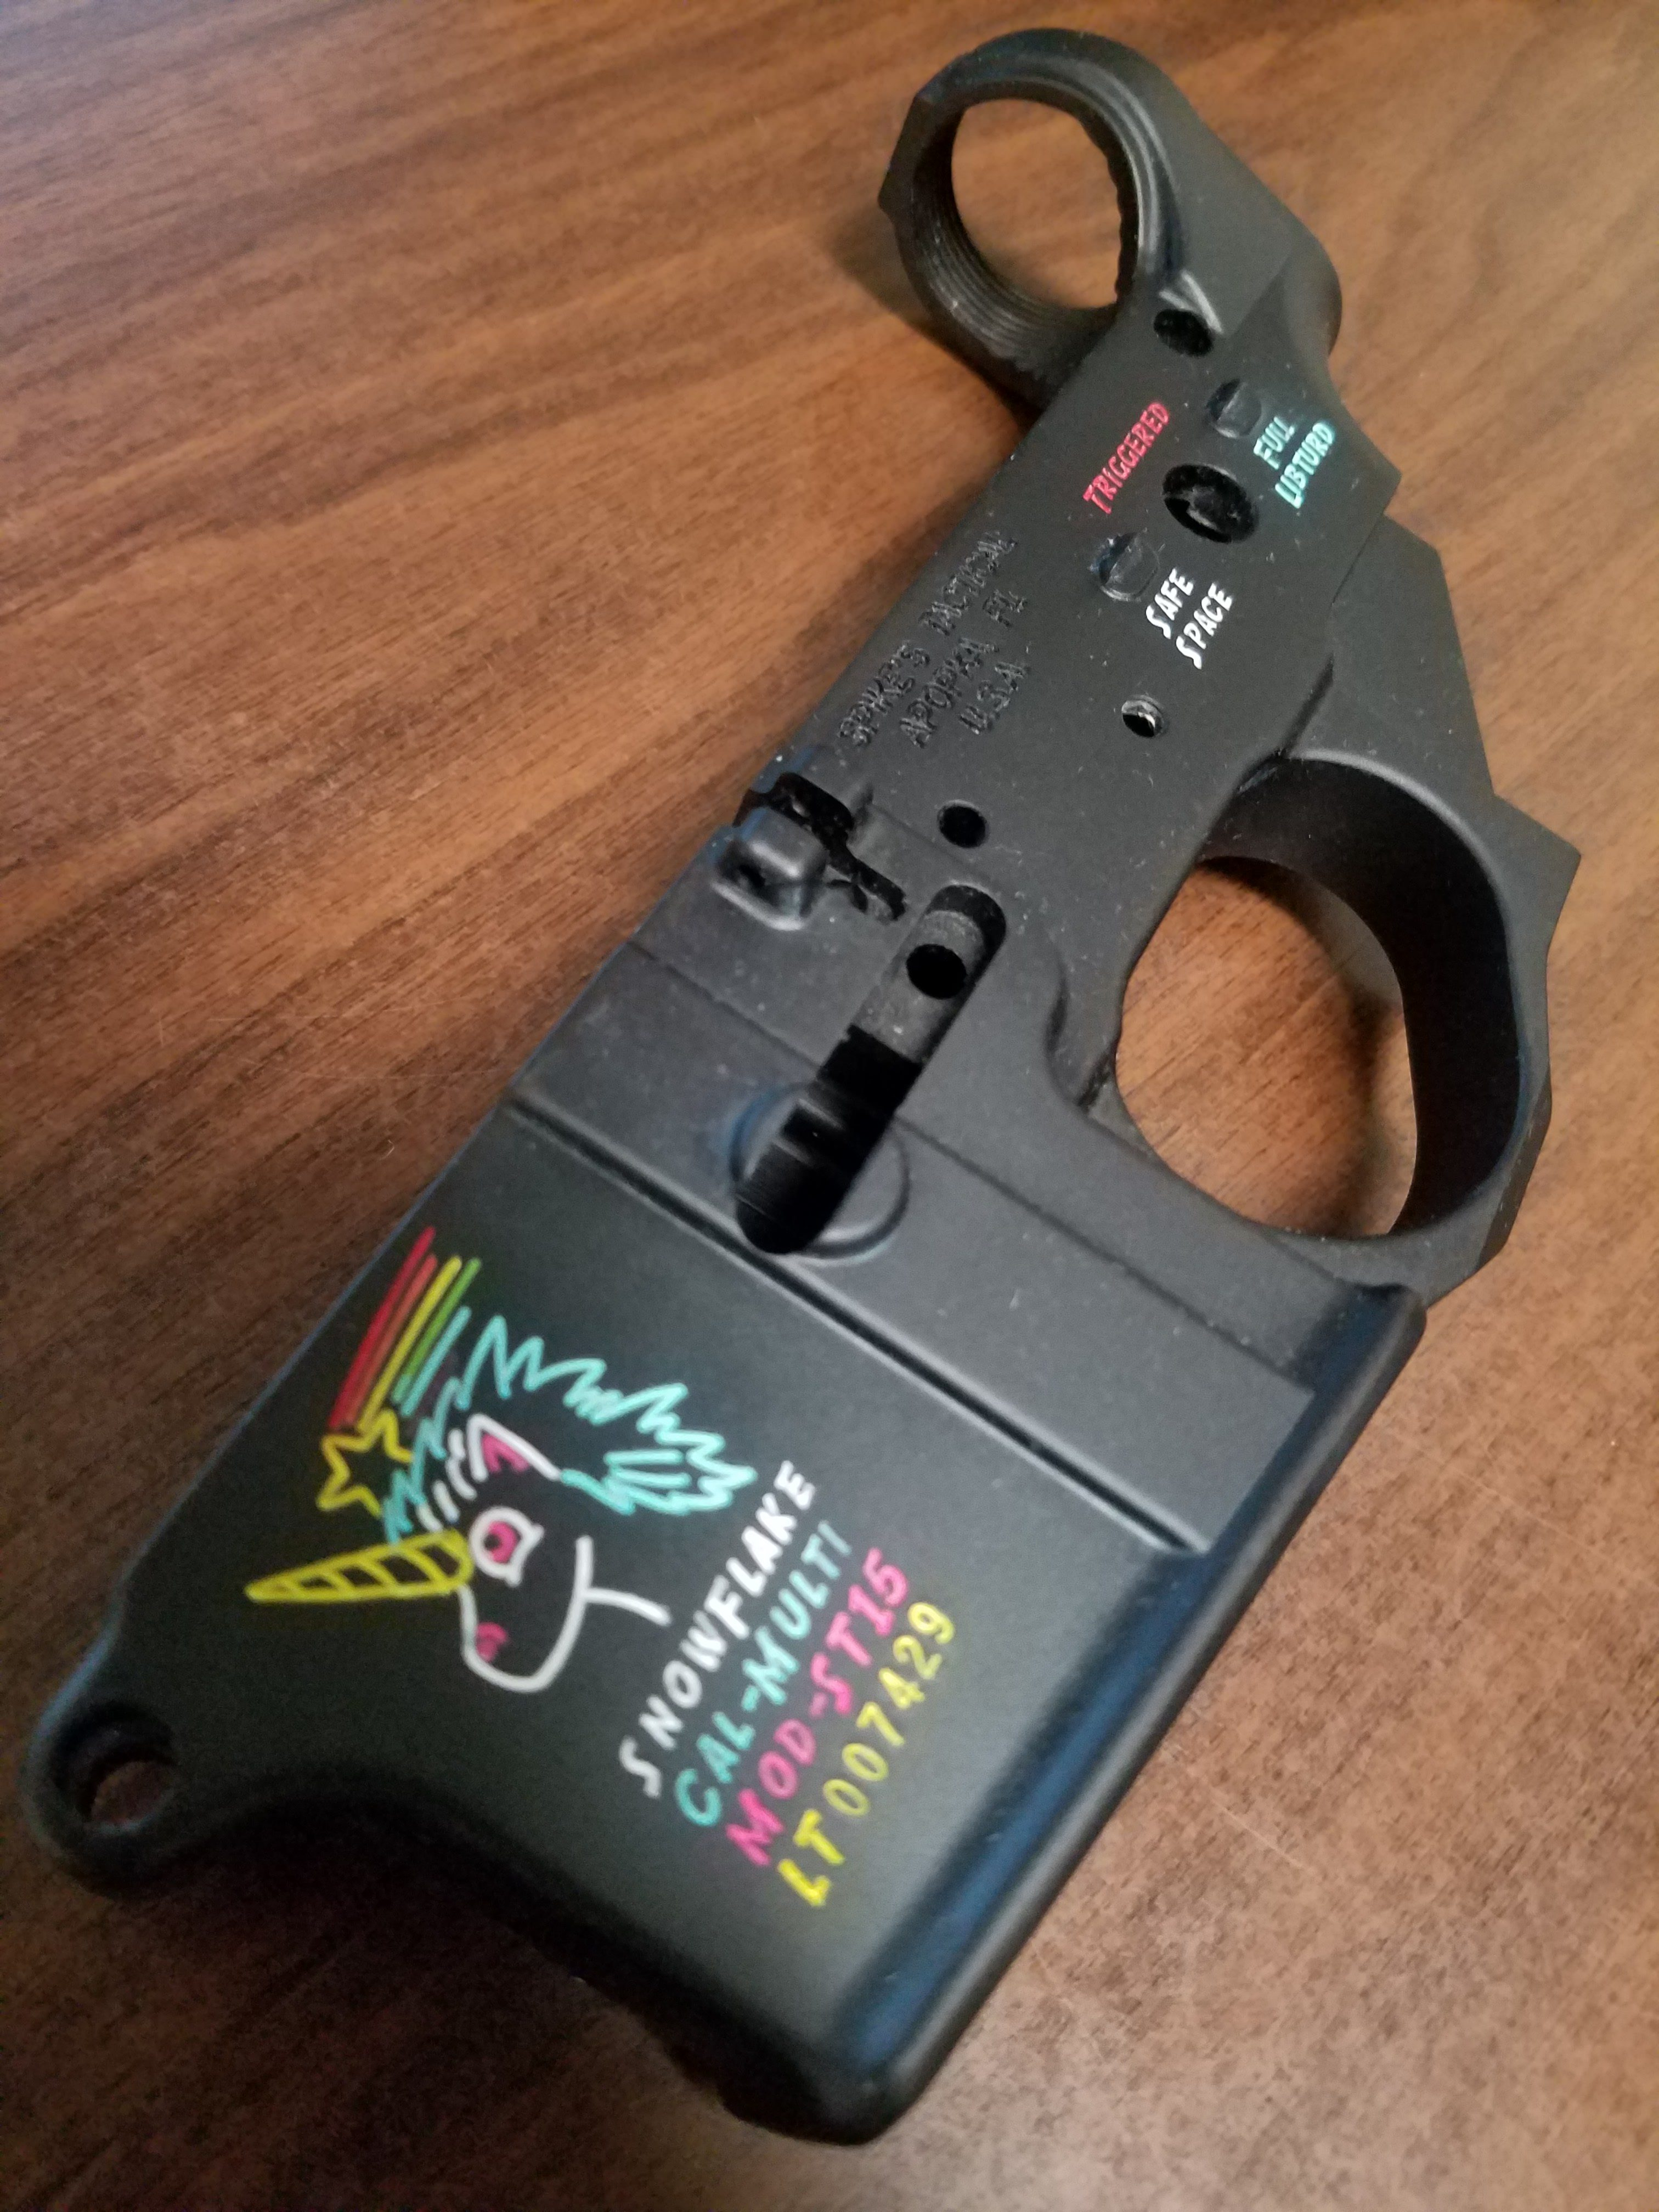 Color filled in the words on the Spikes Tactical snow flake lower